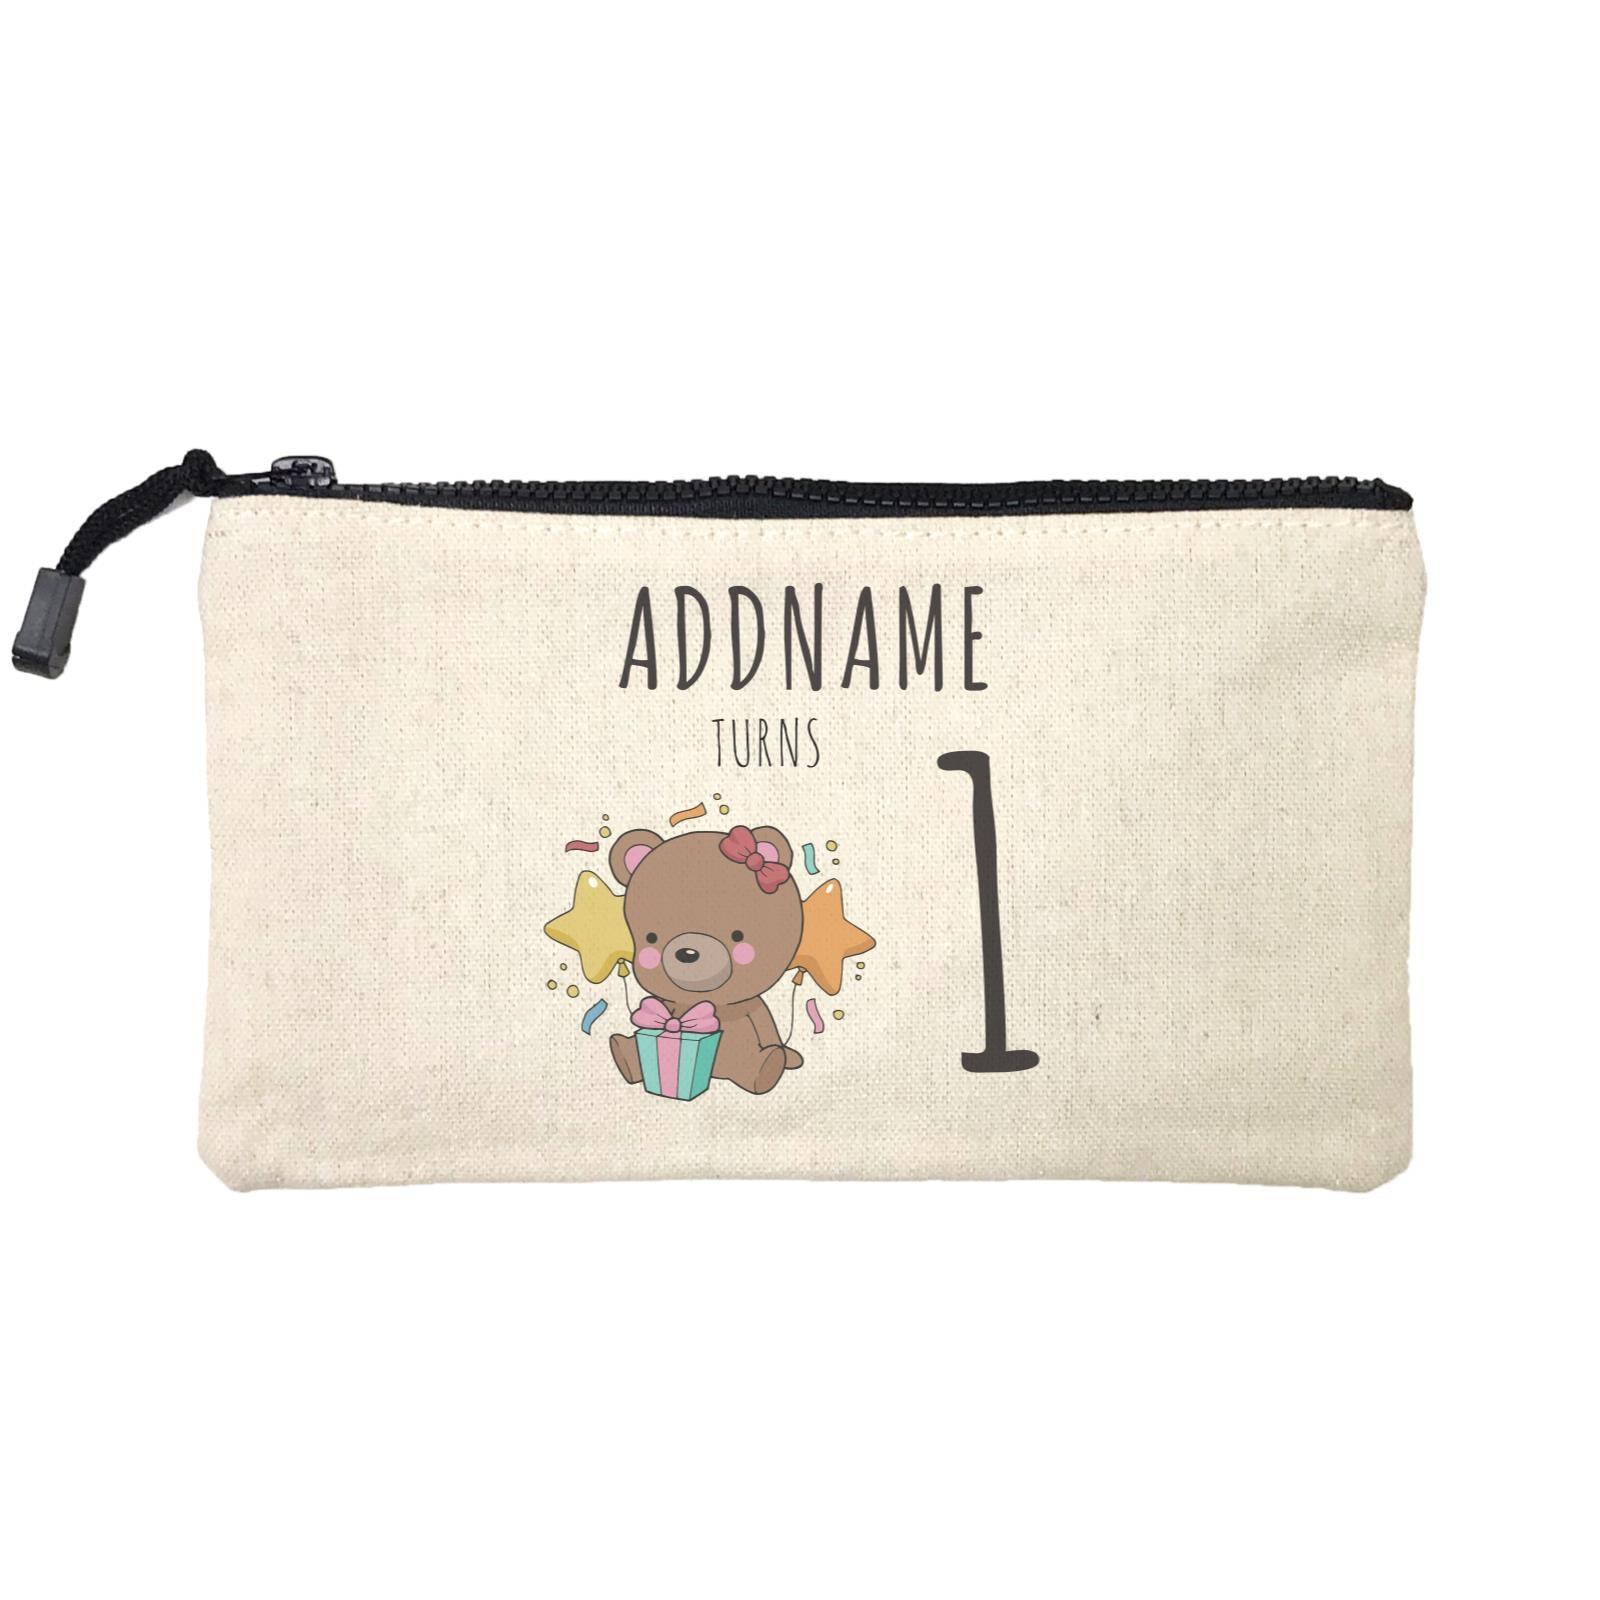 Birthday Sketch Animals Bear with Present Addname Turns 1 Mini Accessories Stationery Pouch